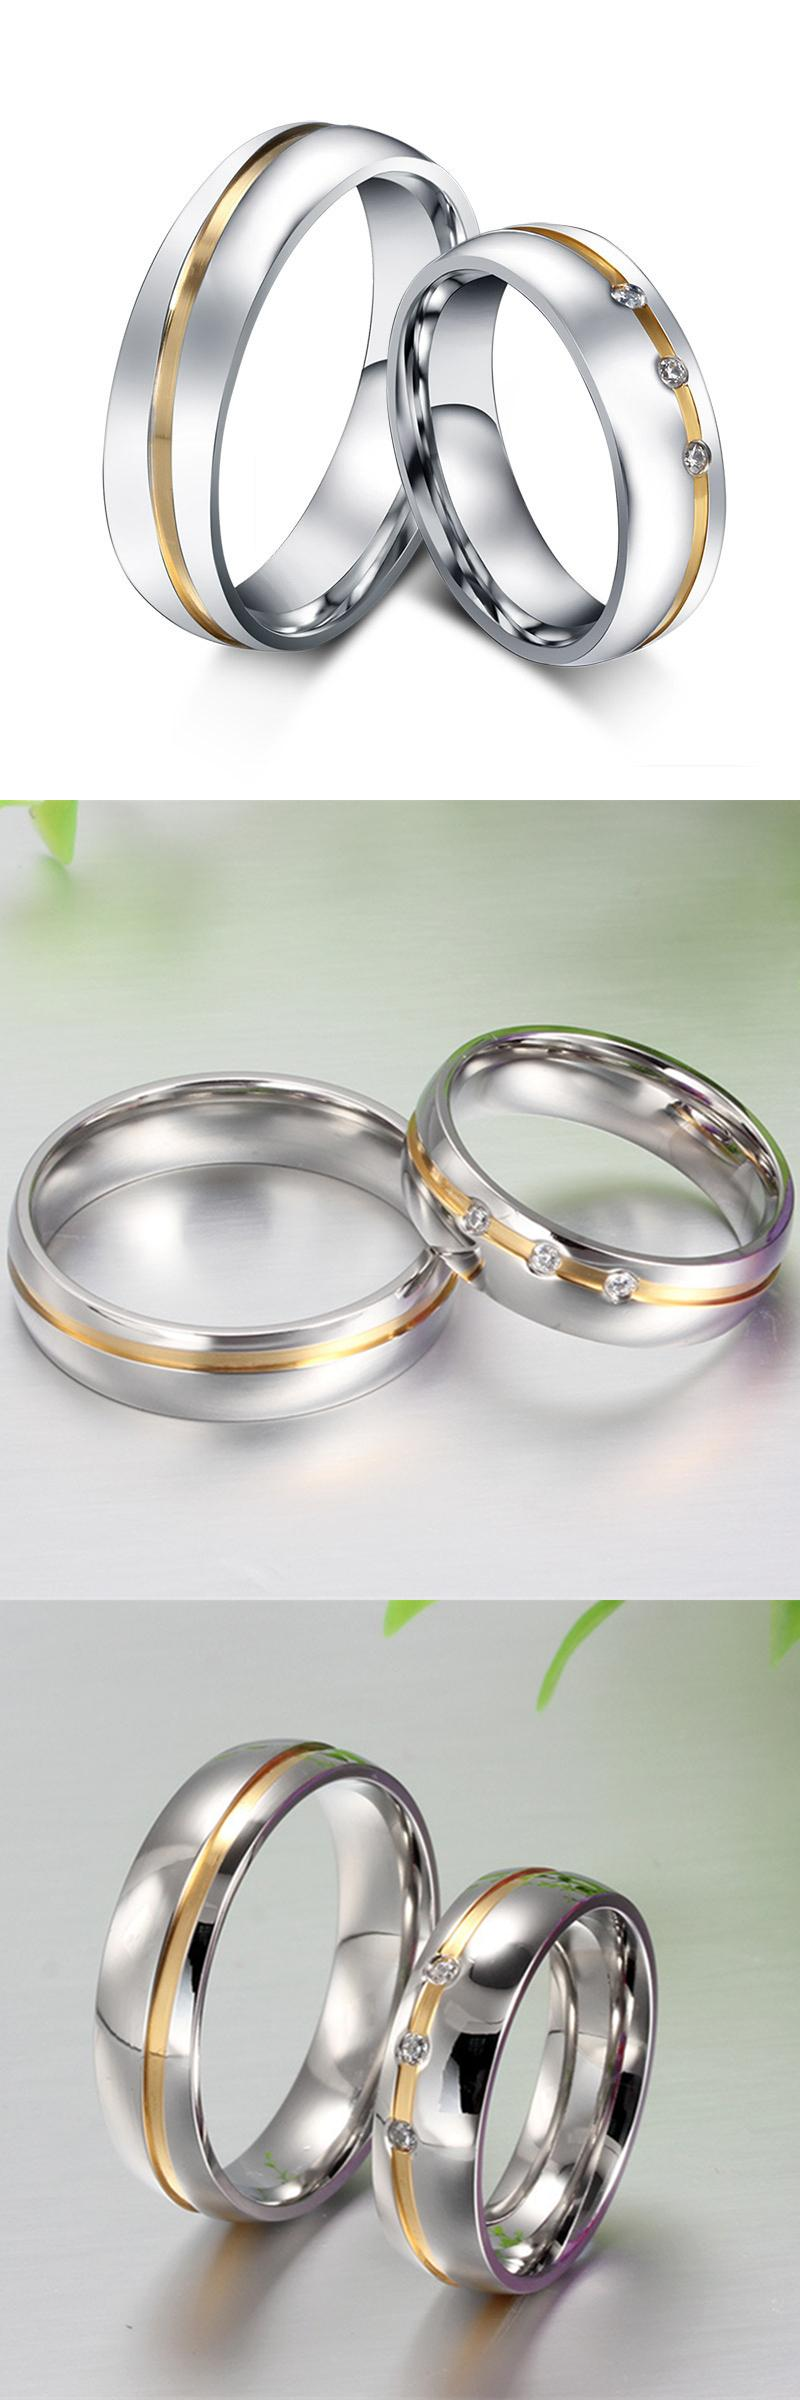 [Visit to Buy] Cubic Zirconia ring Stainless steel couple